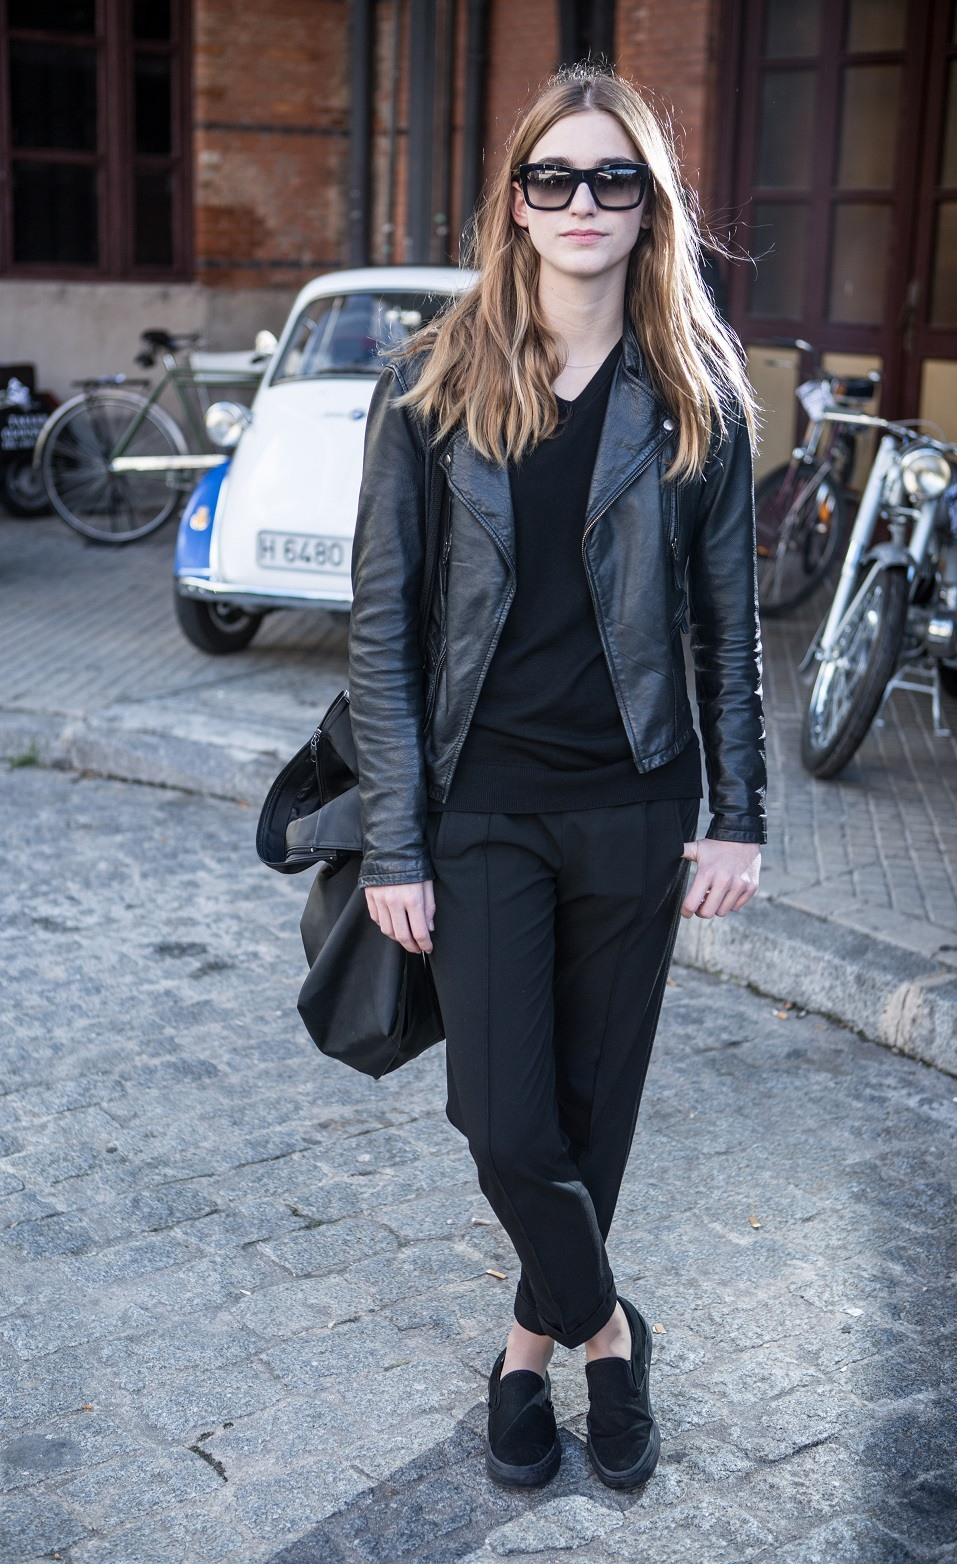 11 Non Boring Ways to Wear All Black, According to Street